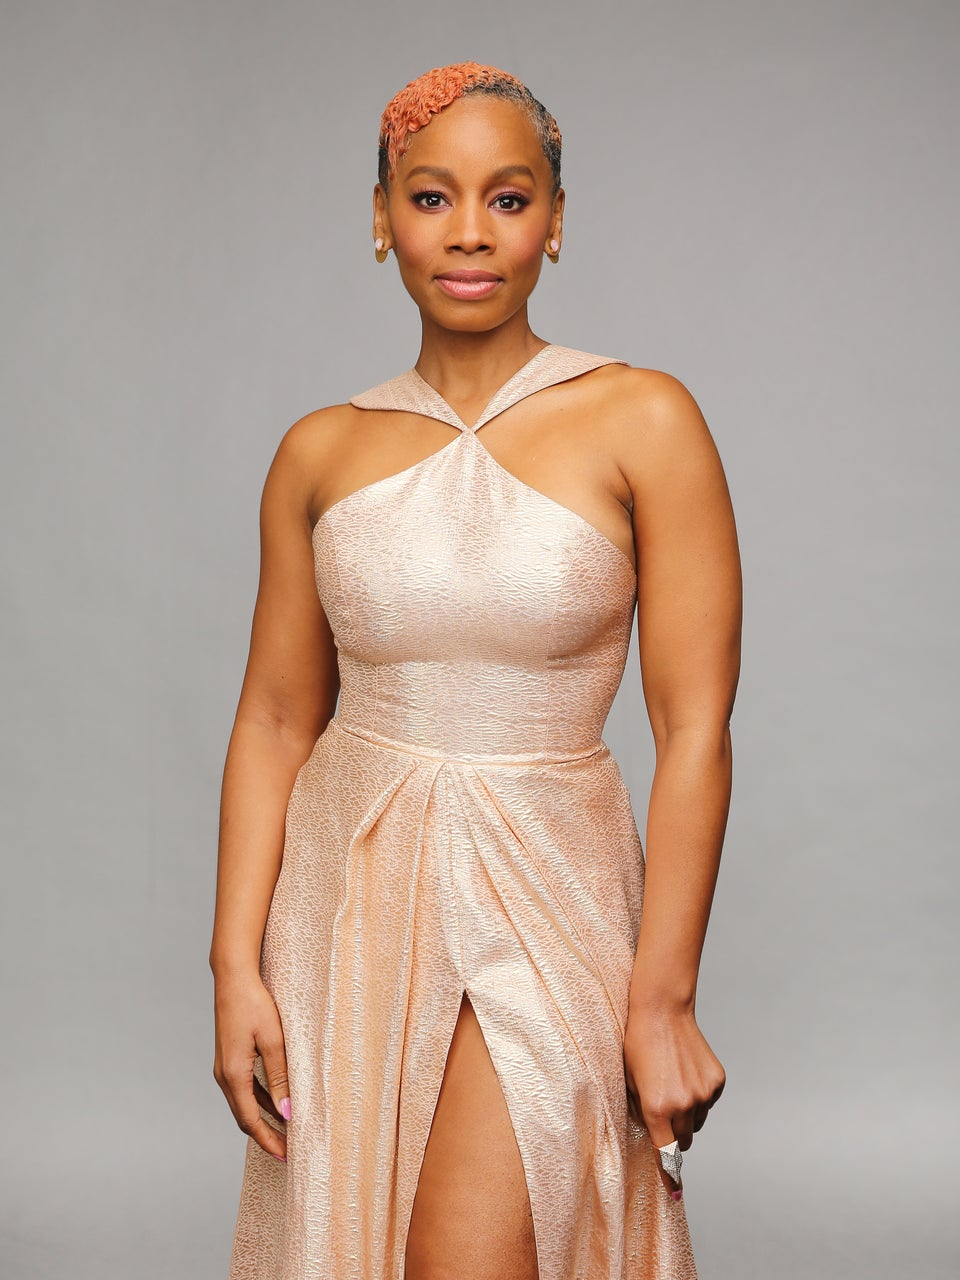 Anika Noni Rose Opens Up About Scary Street Harassment Experience: 'I Could Hear Anger'